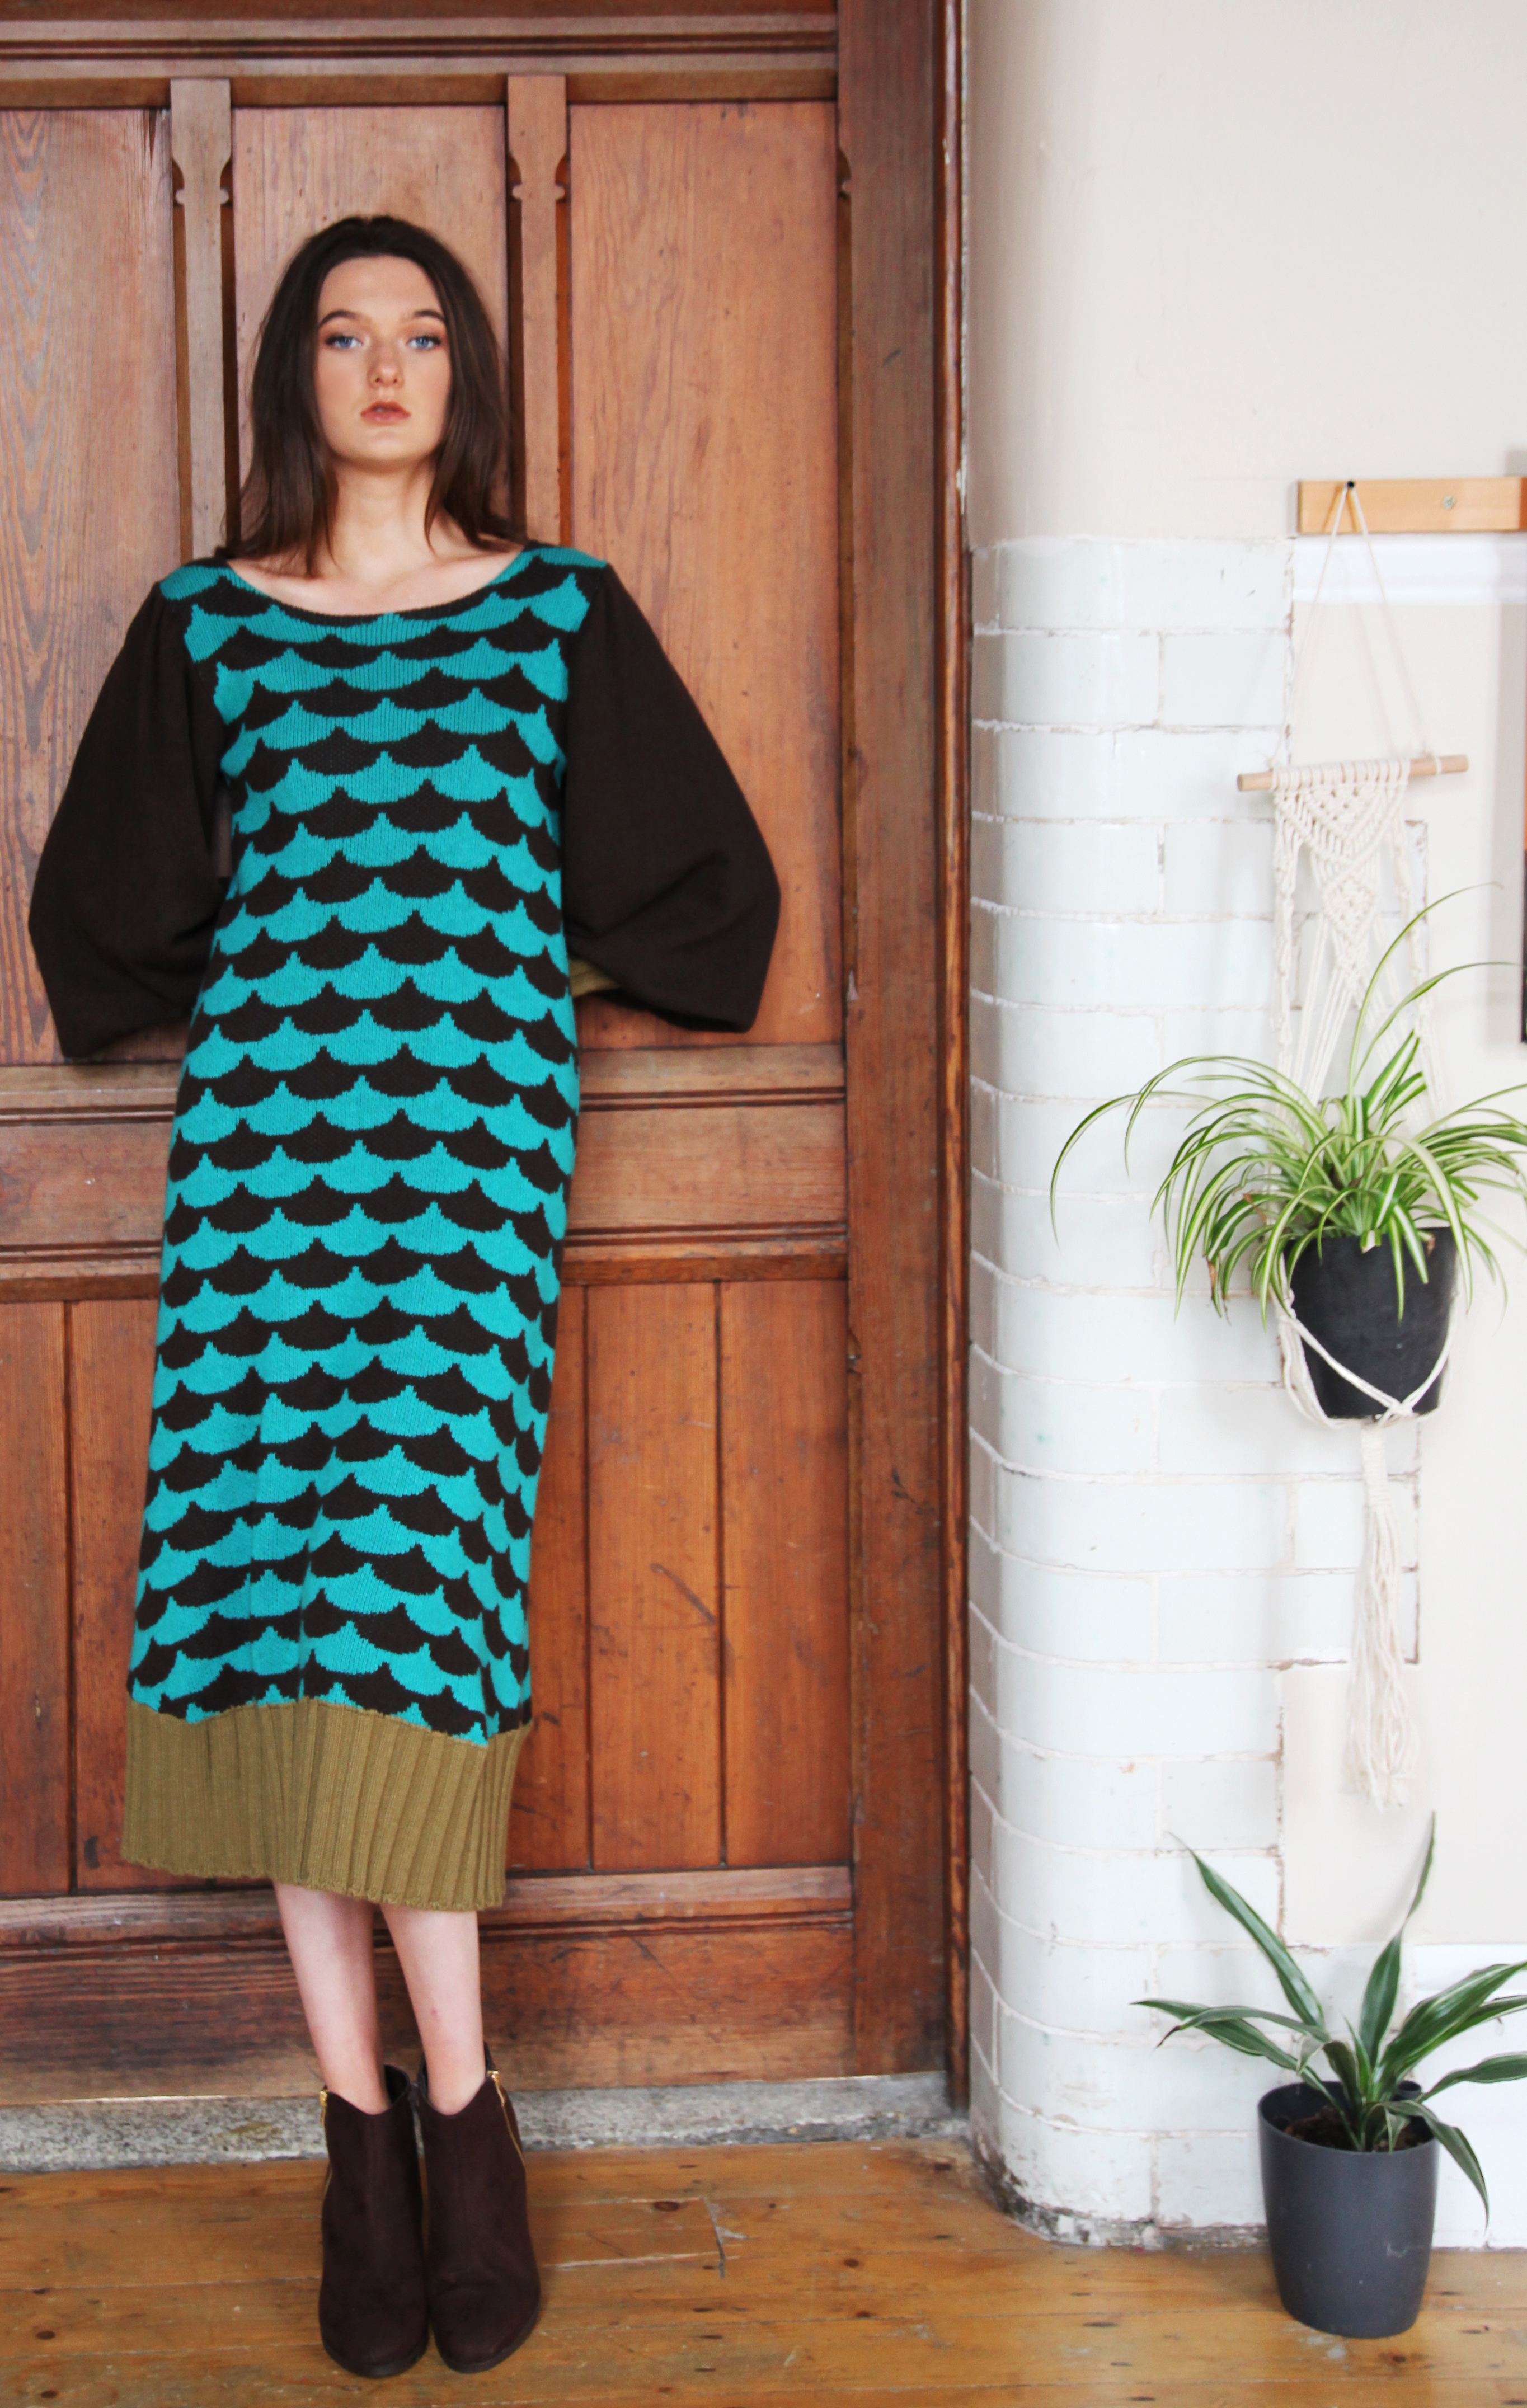 Ribbed Arc Patterned Dress